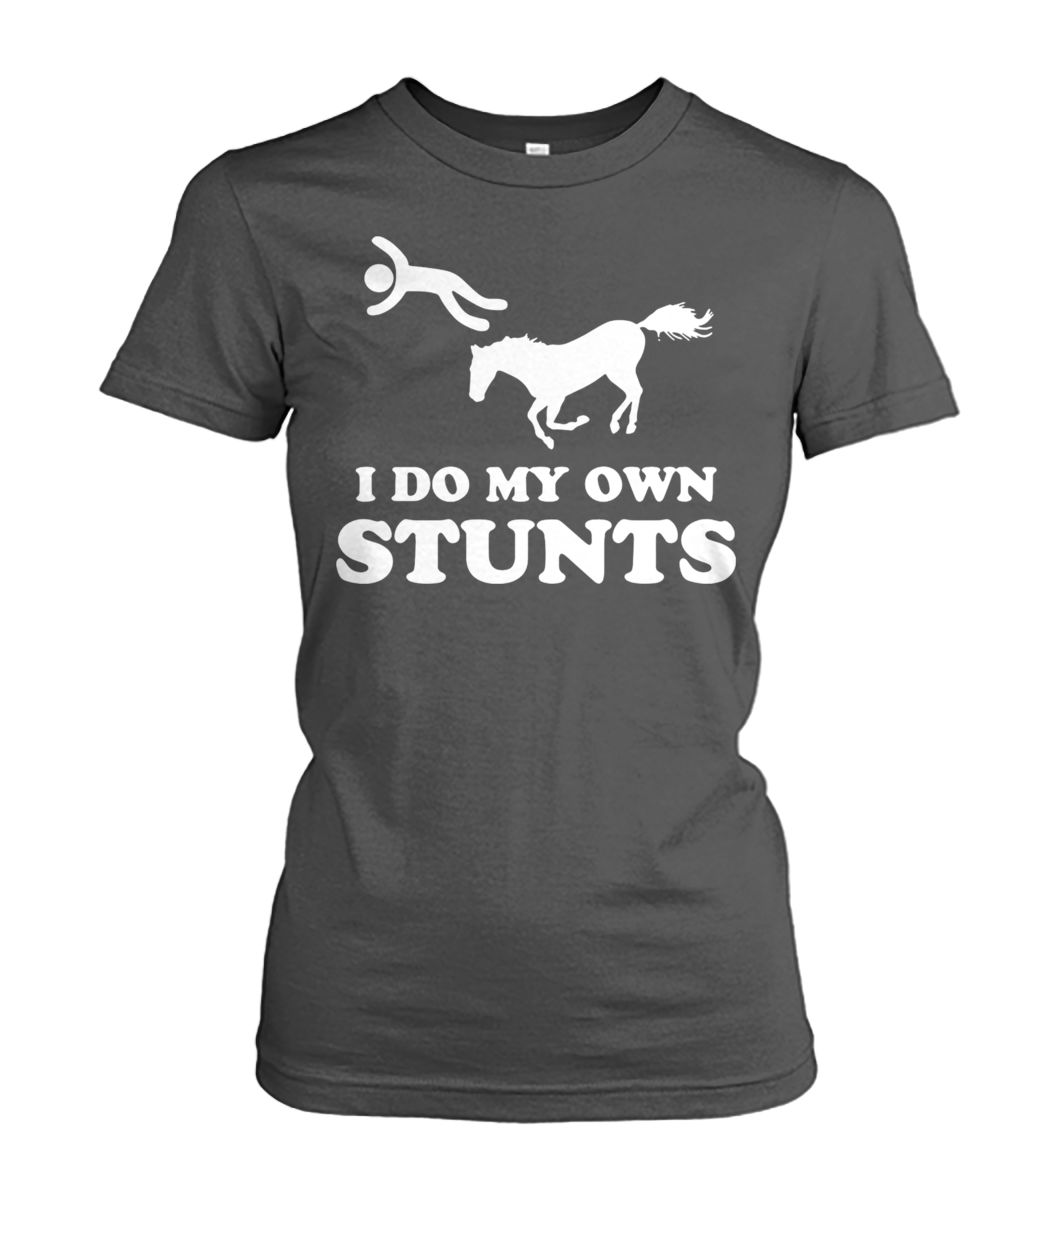 Unhorse I do my own stunts women's crew tee